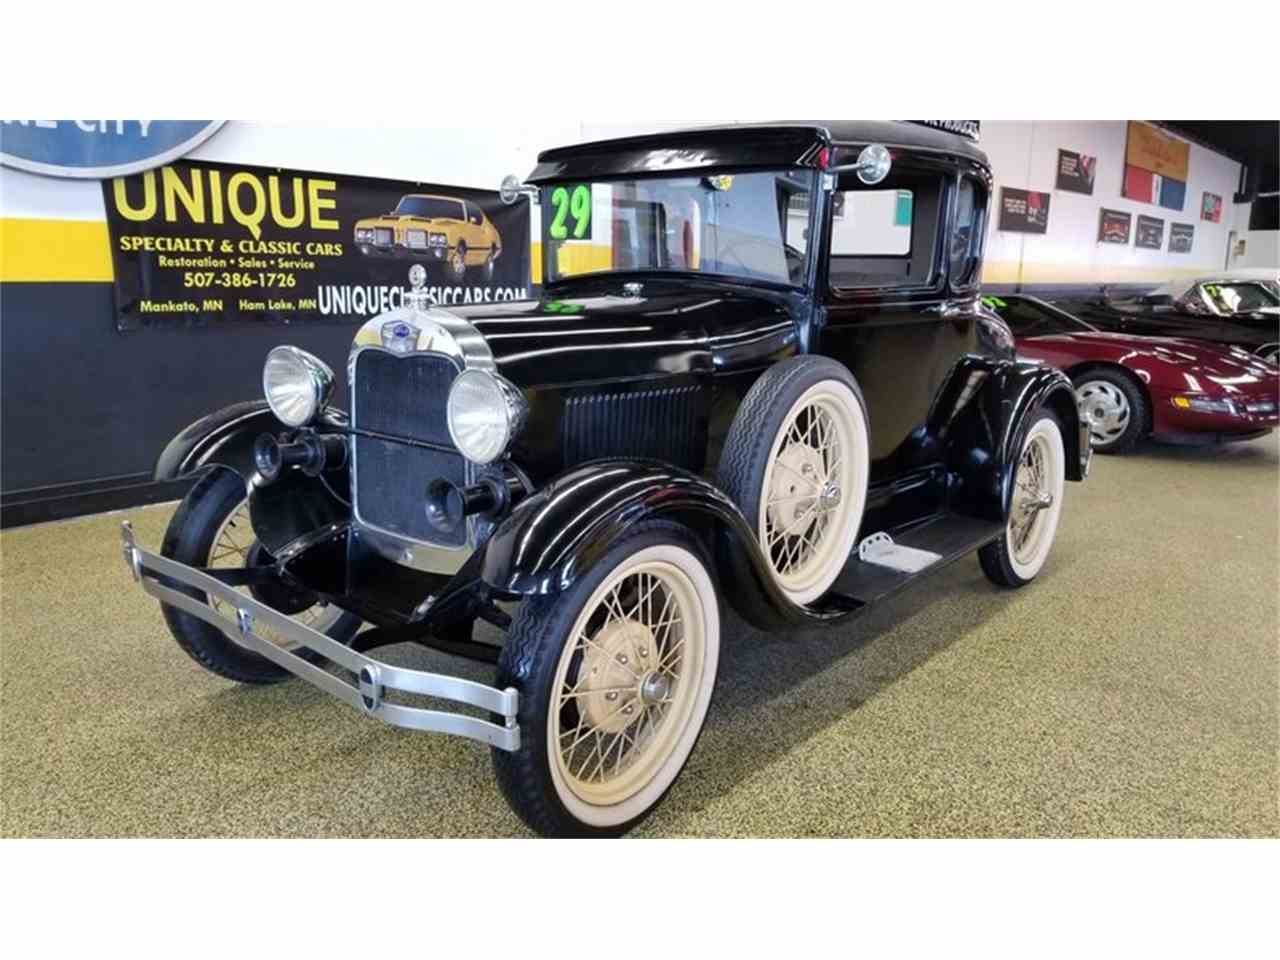 Mankato Car Dealers >> 1929 Ford Model A Coupe w/Rumbleseat for Sale ...